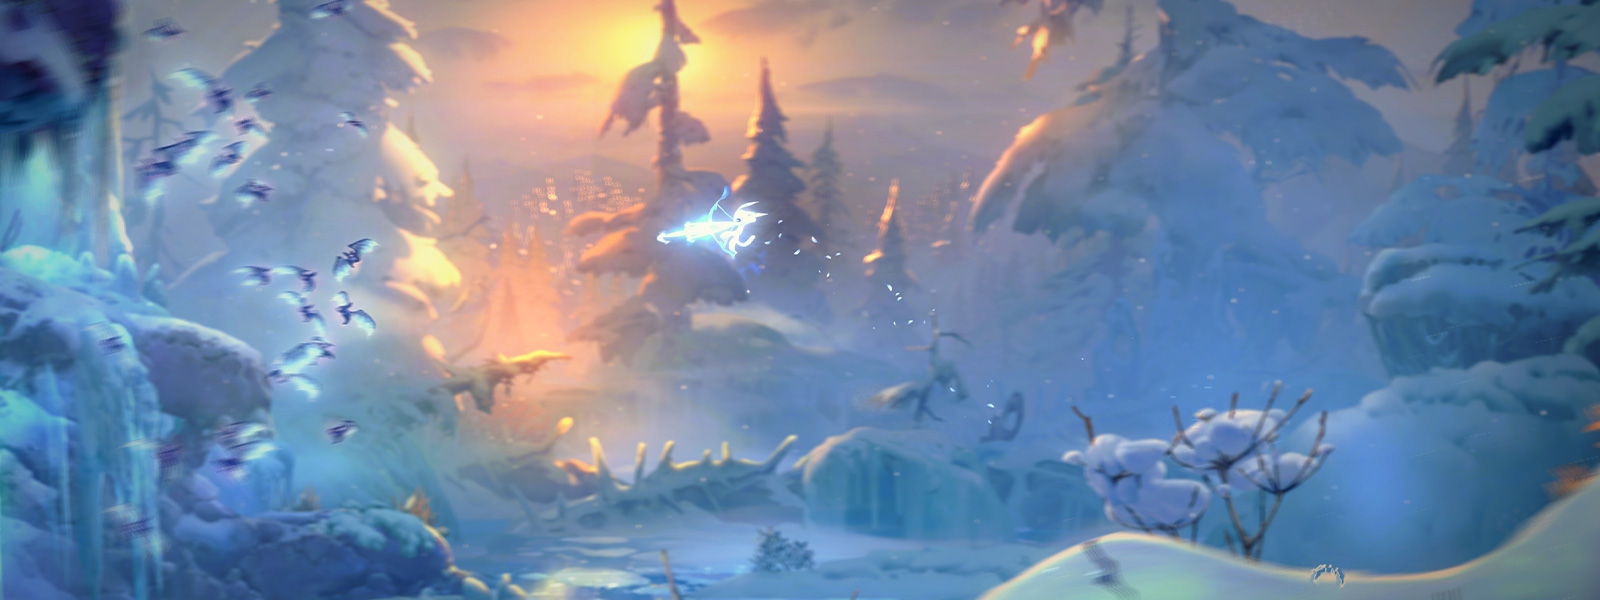 Ori fires a glowing arrow